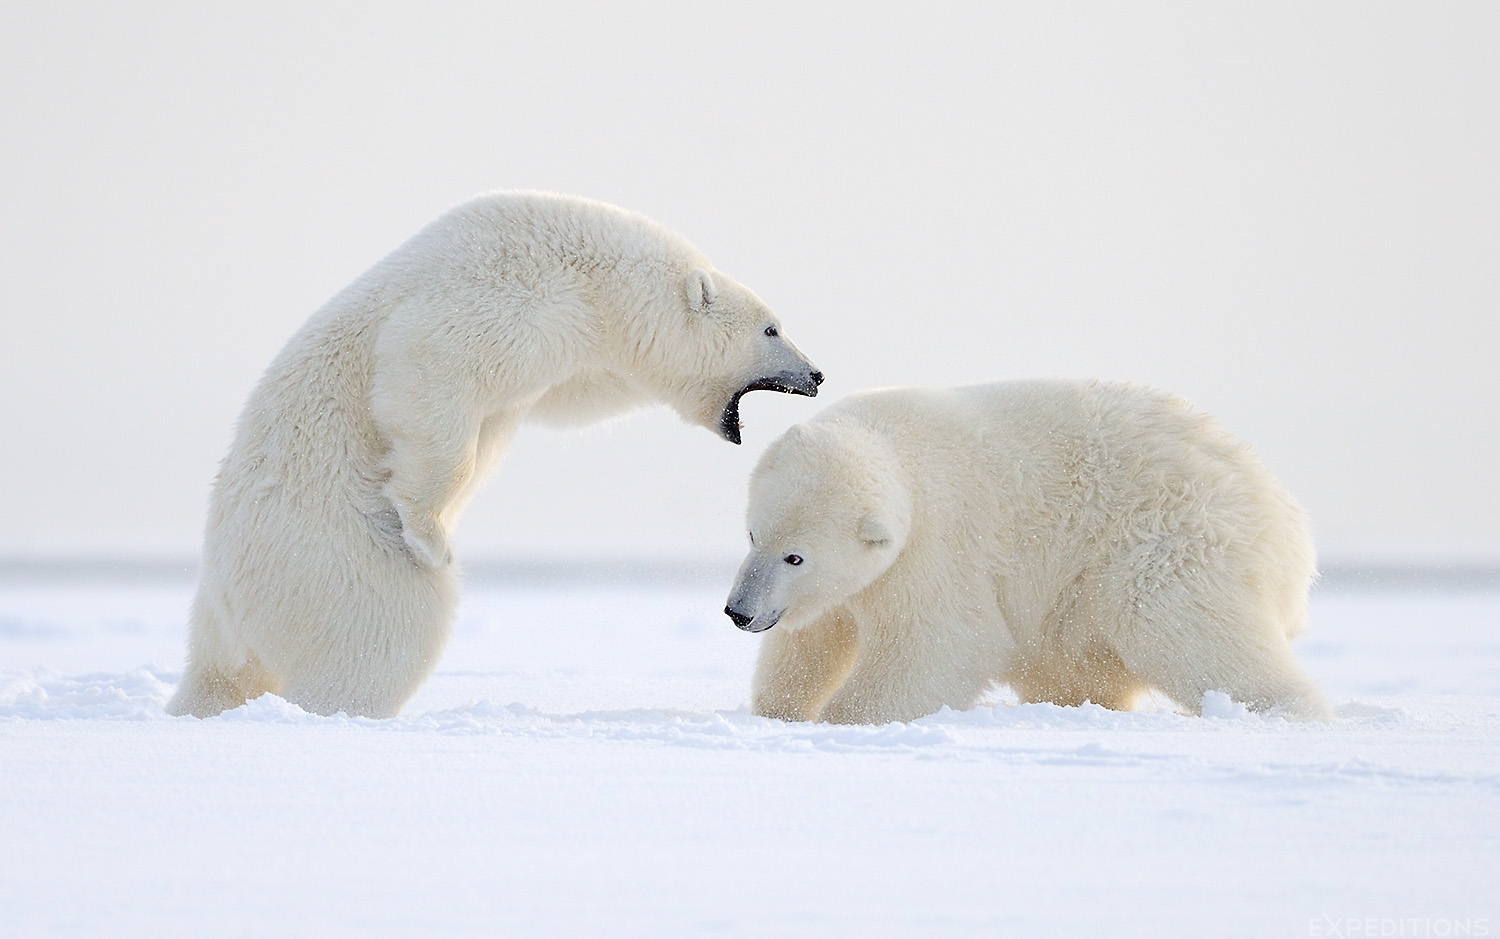 2 polar bears hard at work, or play. Twins, these 2 year old polar bear cubs played hard on the early snow in fall, in the Arctic National Wildlife Refuge, or ANWR, Alaska. Polar bears, Ursus maritimus, ANWR, Alaska.